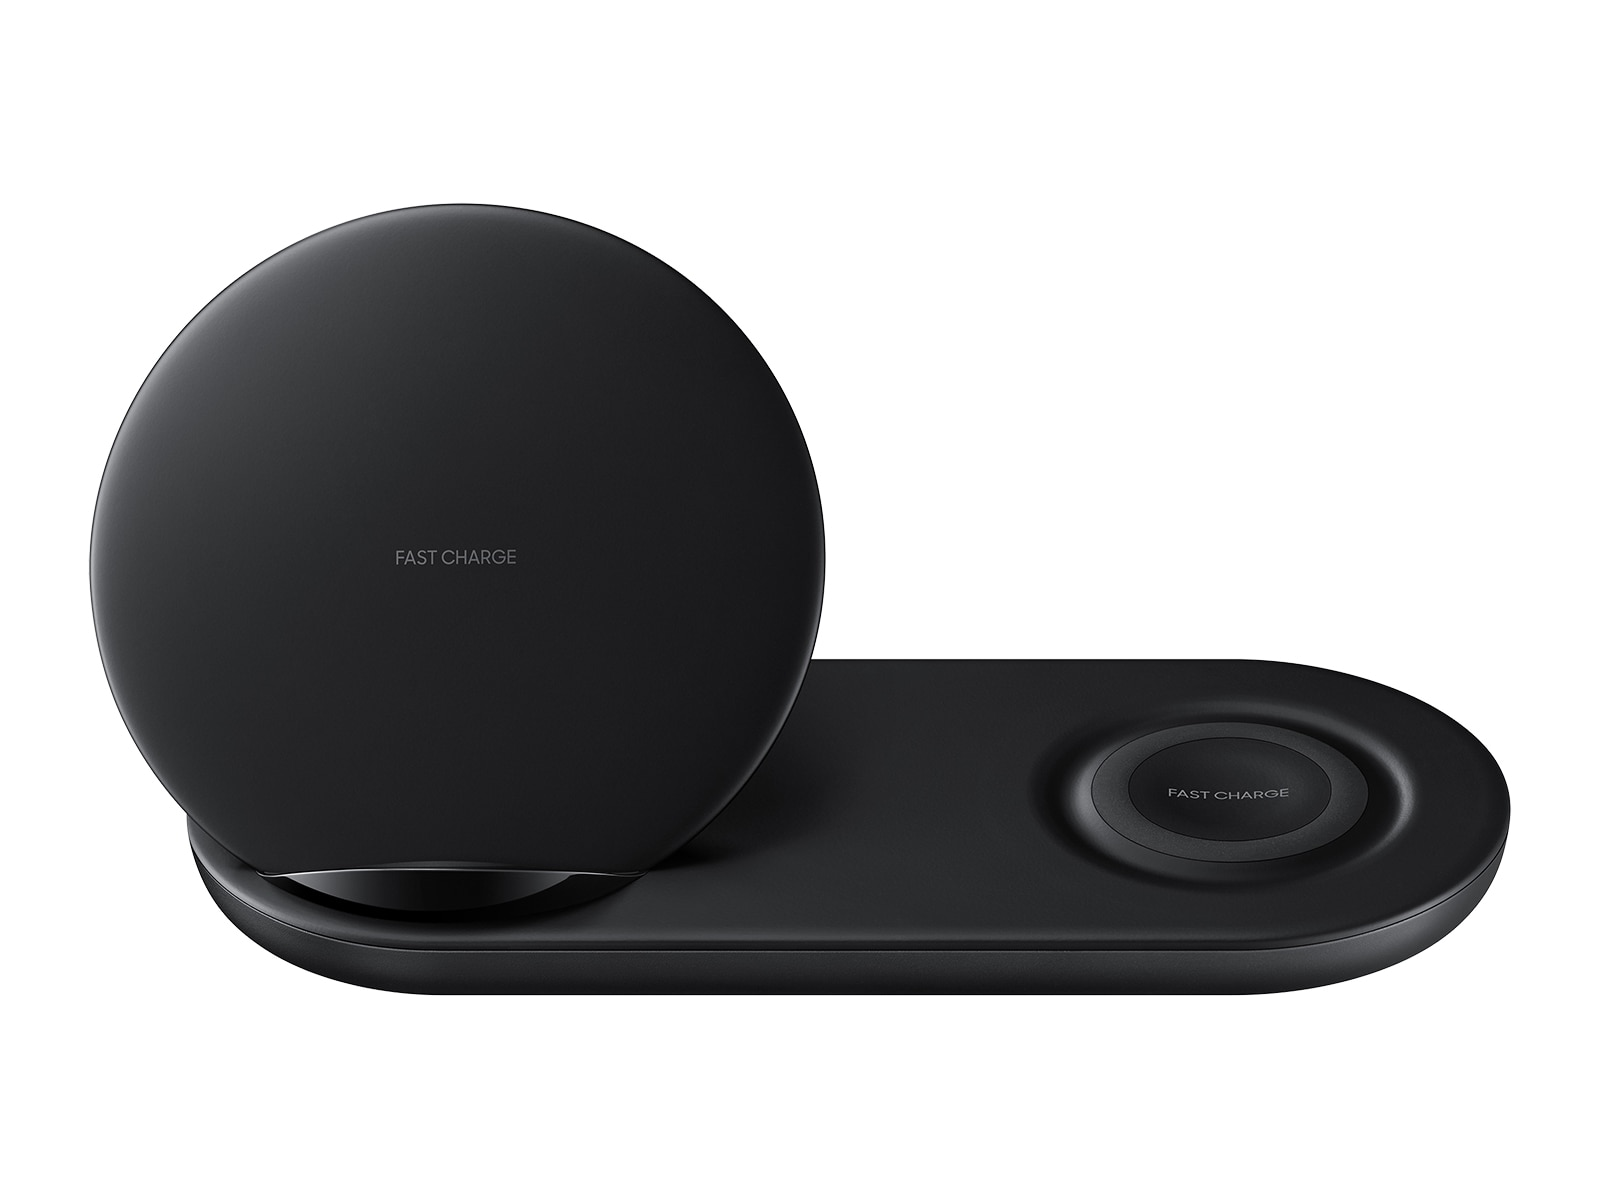 Wireless Charger Duo Black Mobile Accessories Ep N6100tbegus Speaker Advance 300 Komputer